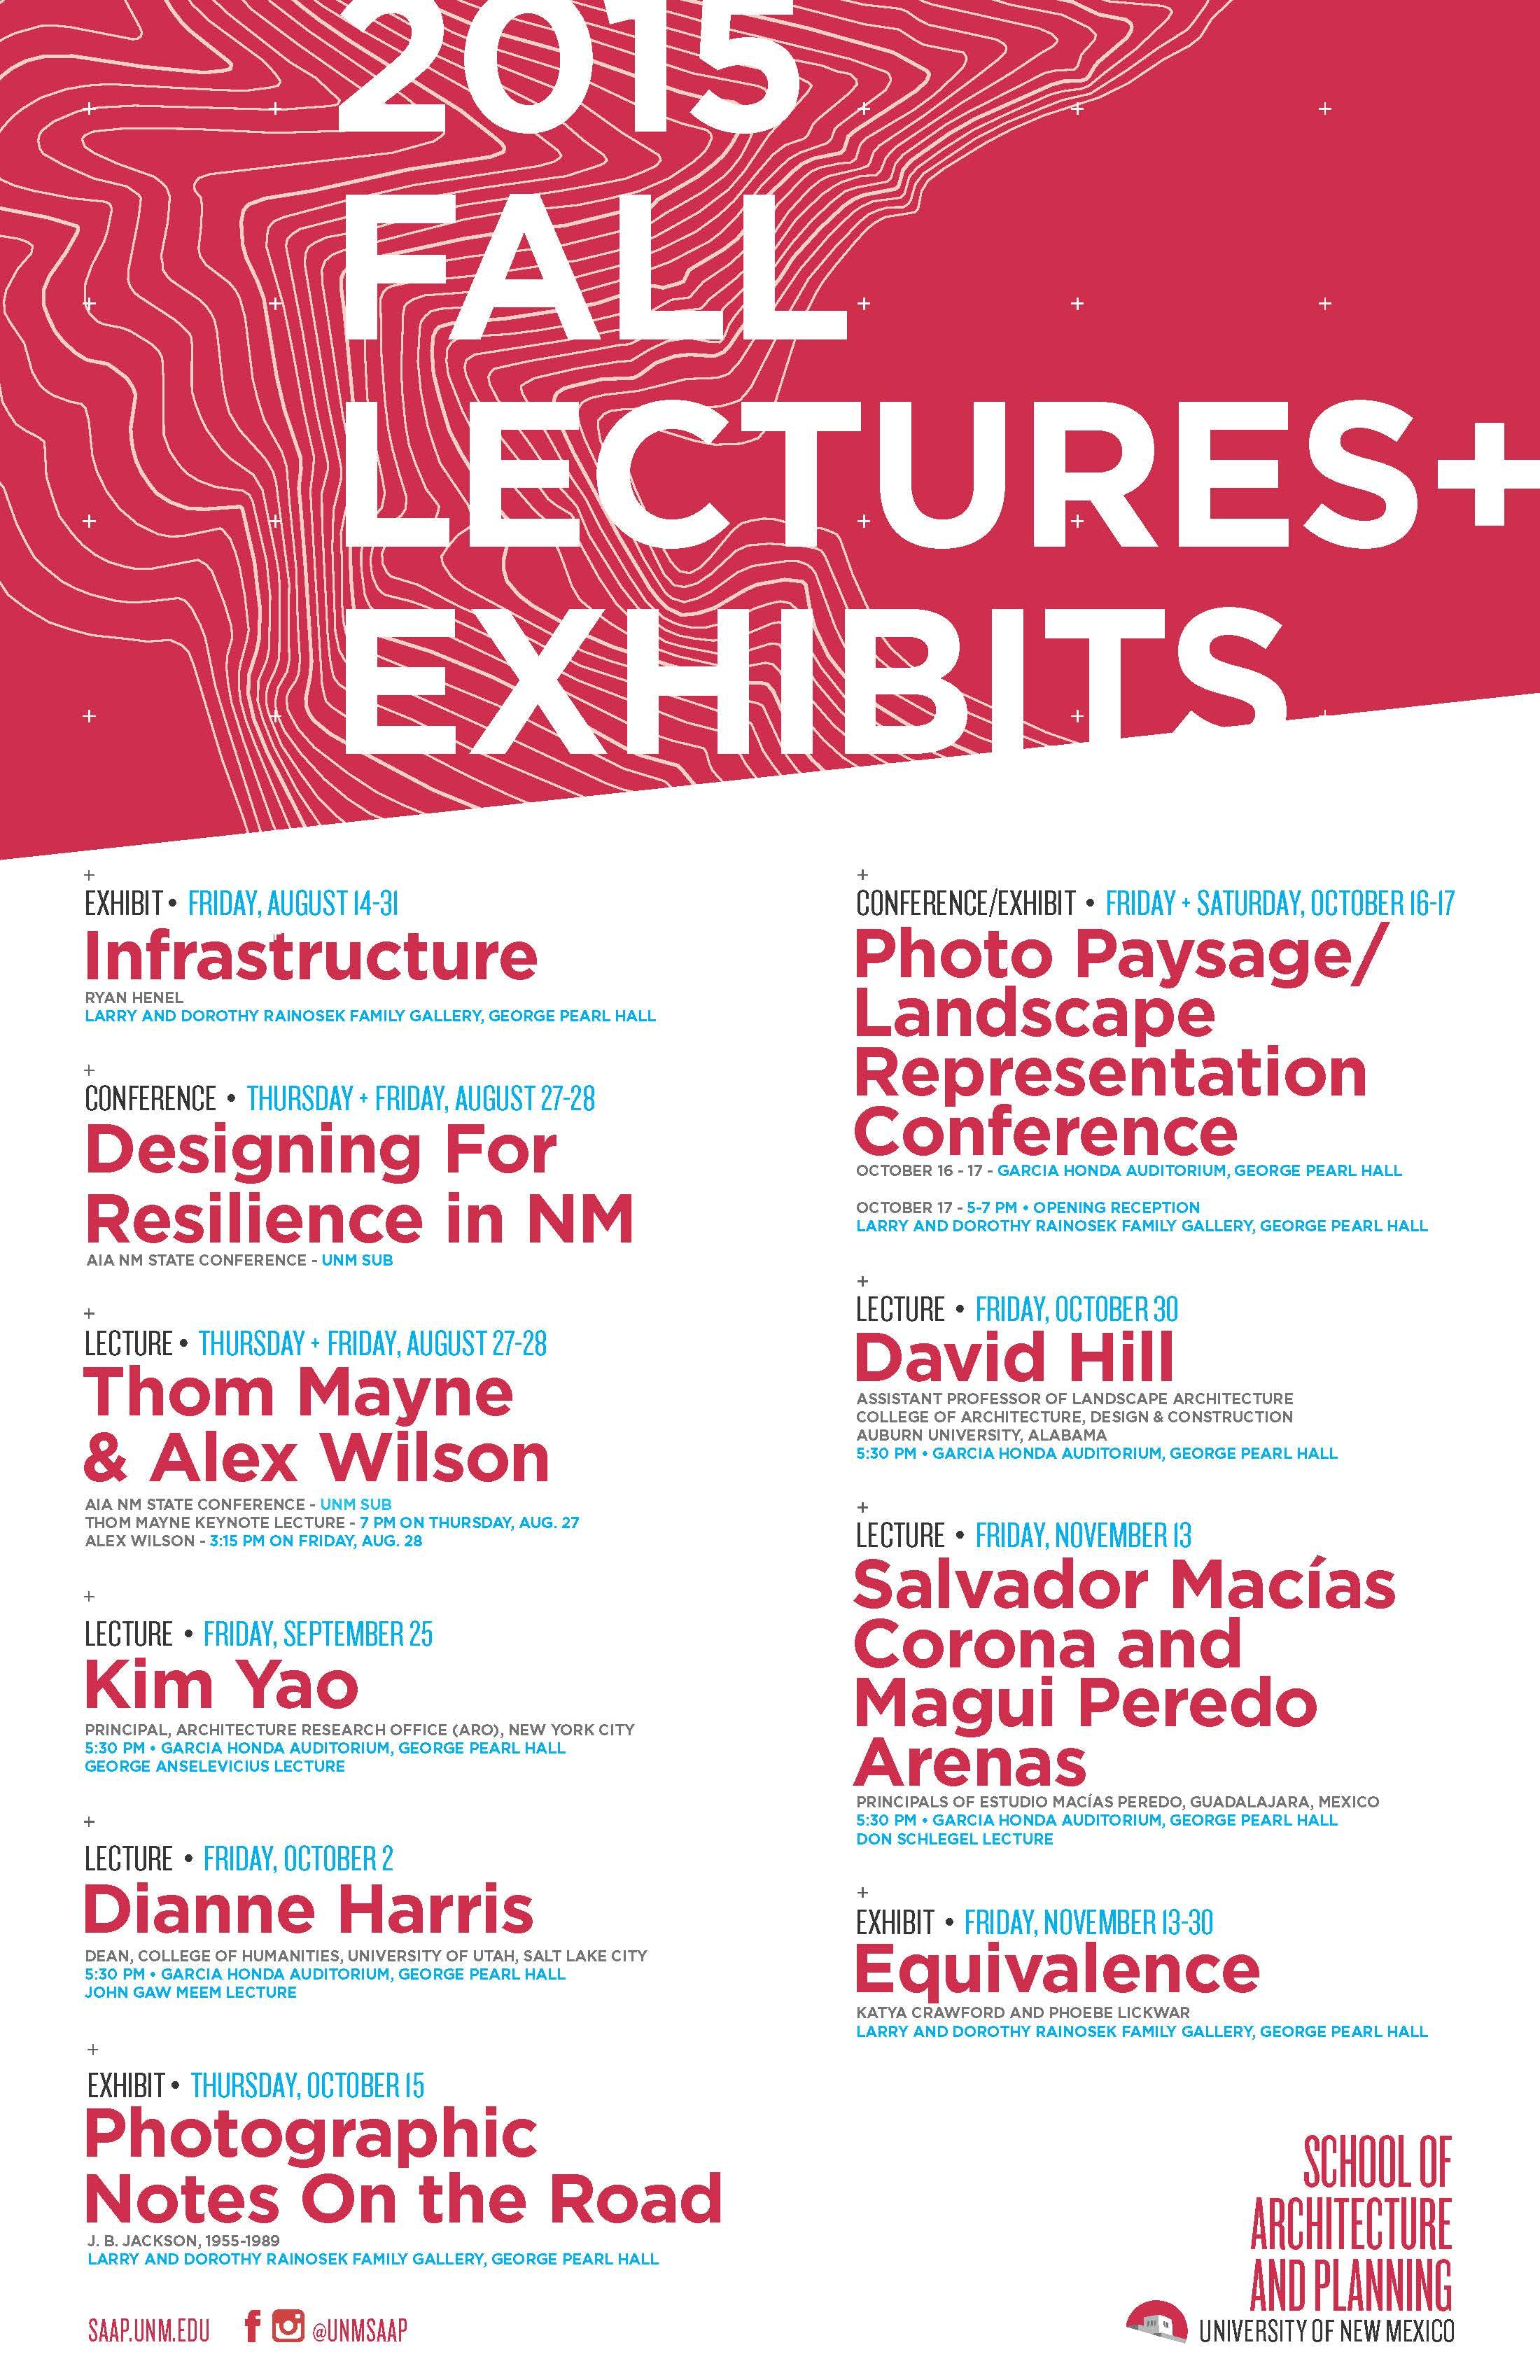 Get Lectured: University of New Mexico, Fall '15 | News